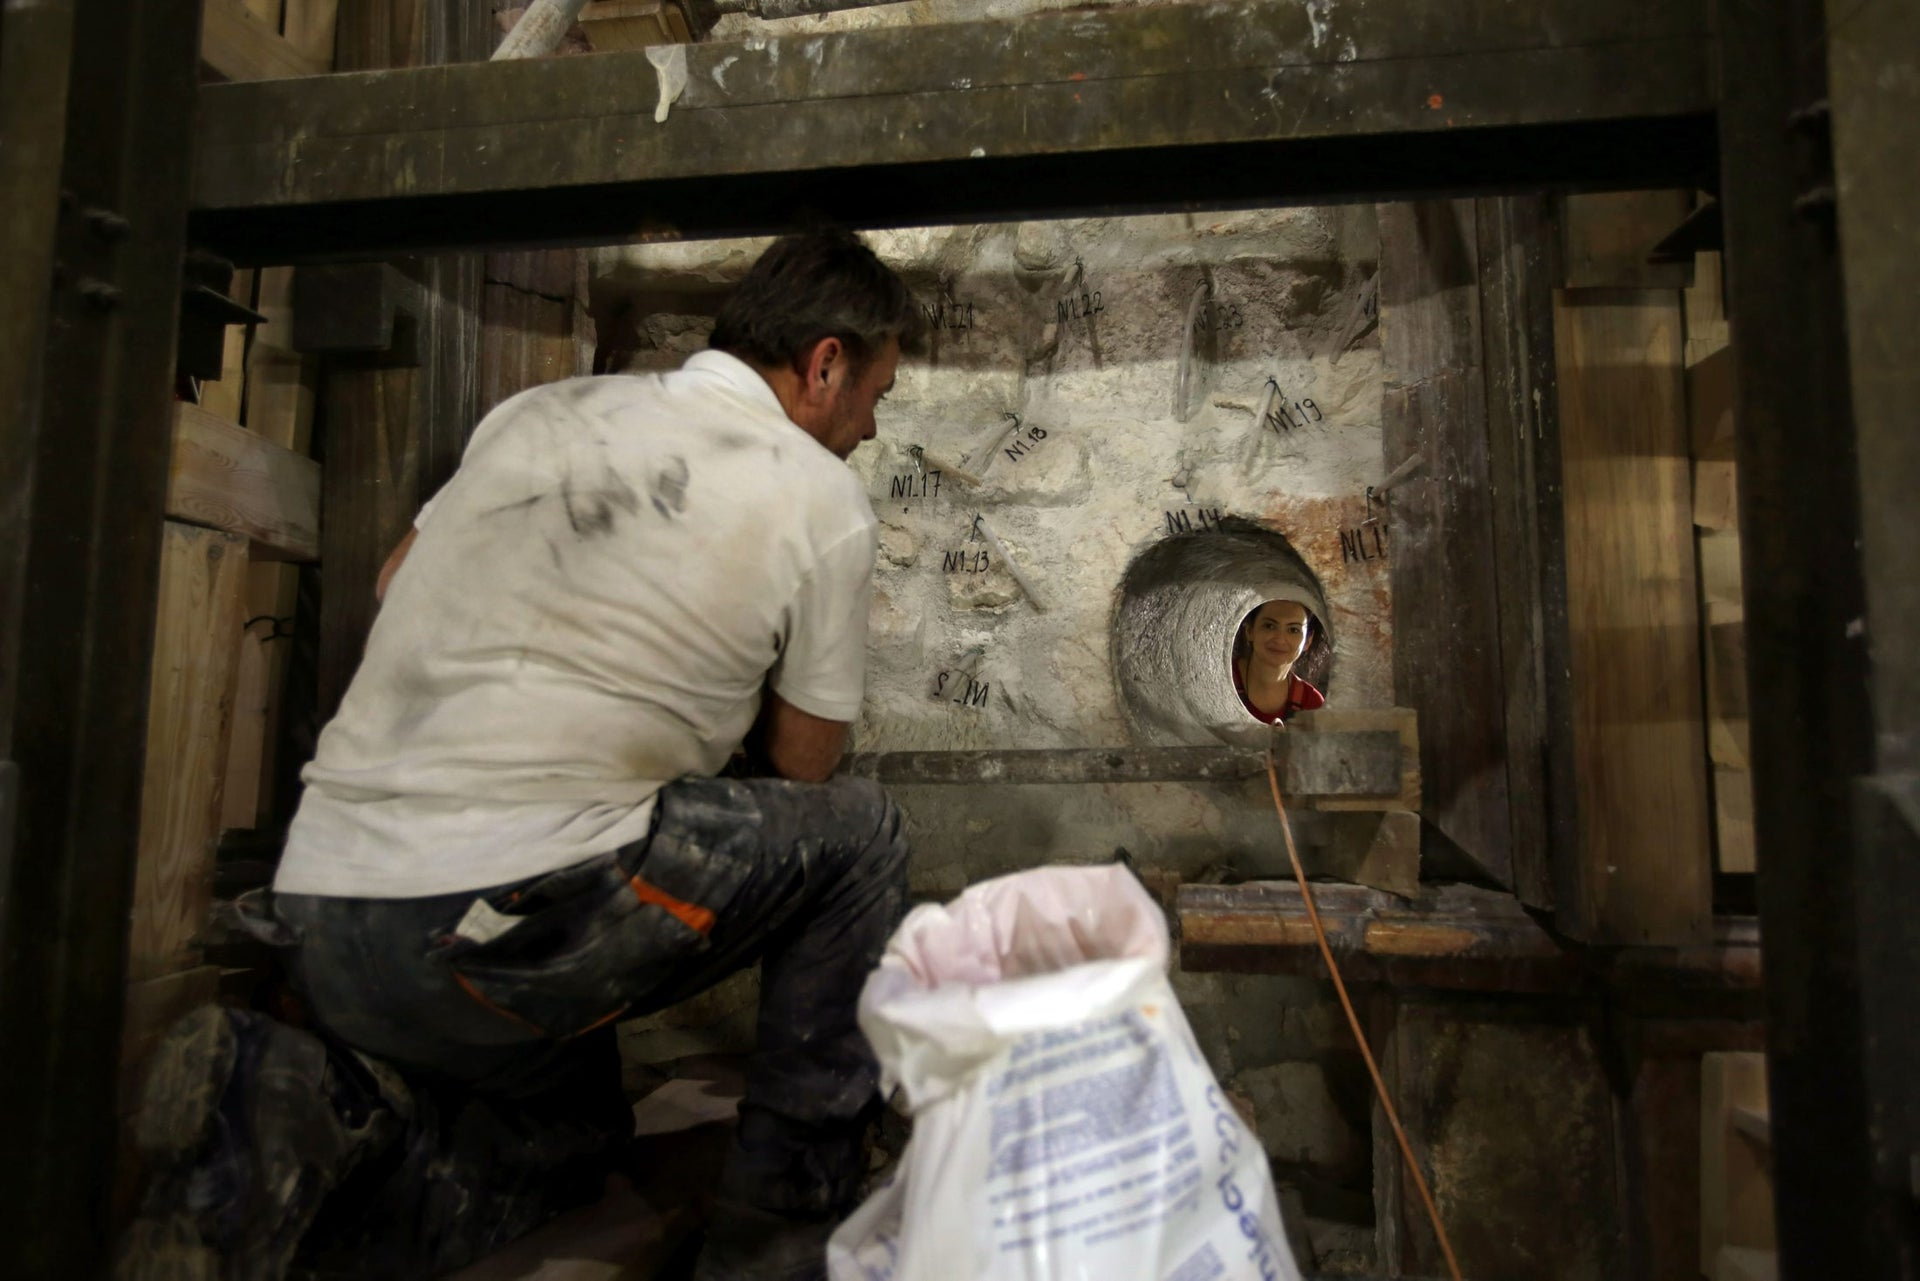 Greek preservation experts work to strengthen the Adicule surrounding the Tomb of Jesus, where his body is believed to have been laid, as part of conservation work done by the Greek team in Jerusalem on late on October 28, 2016.